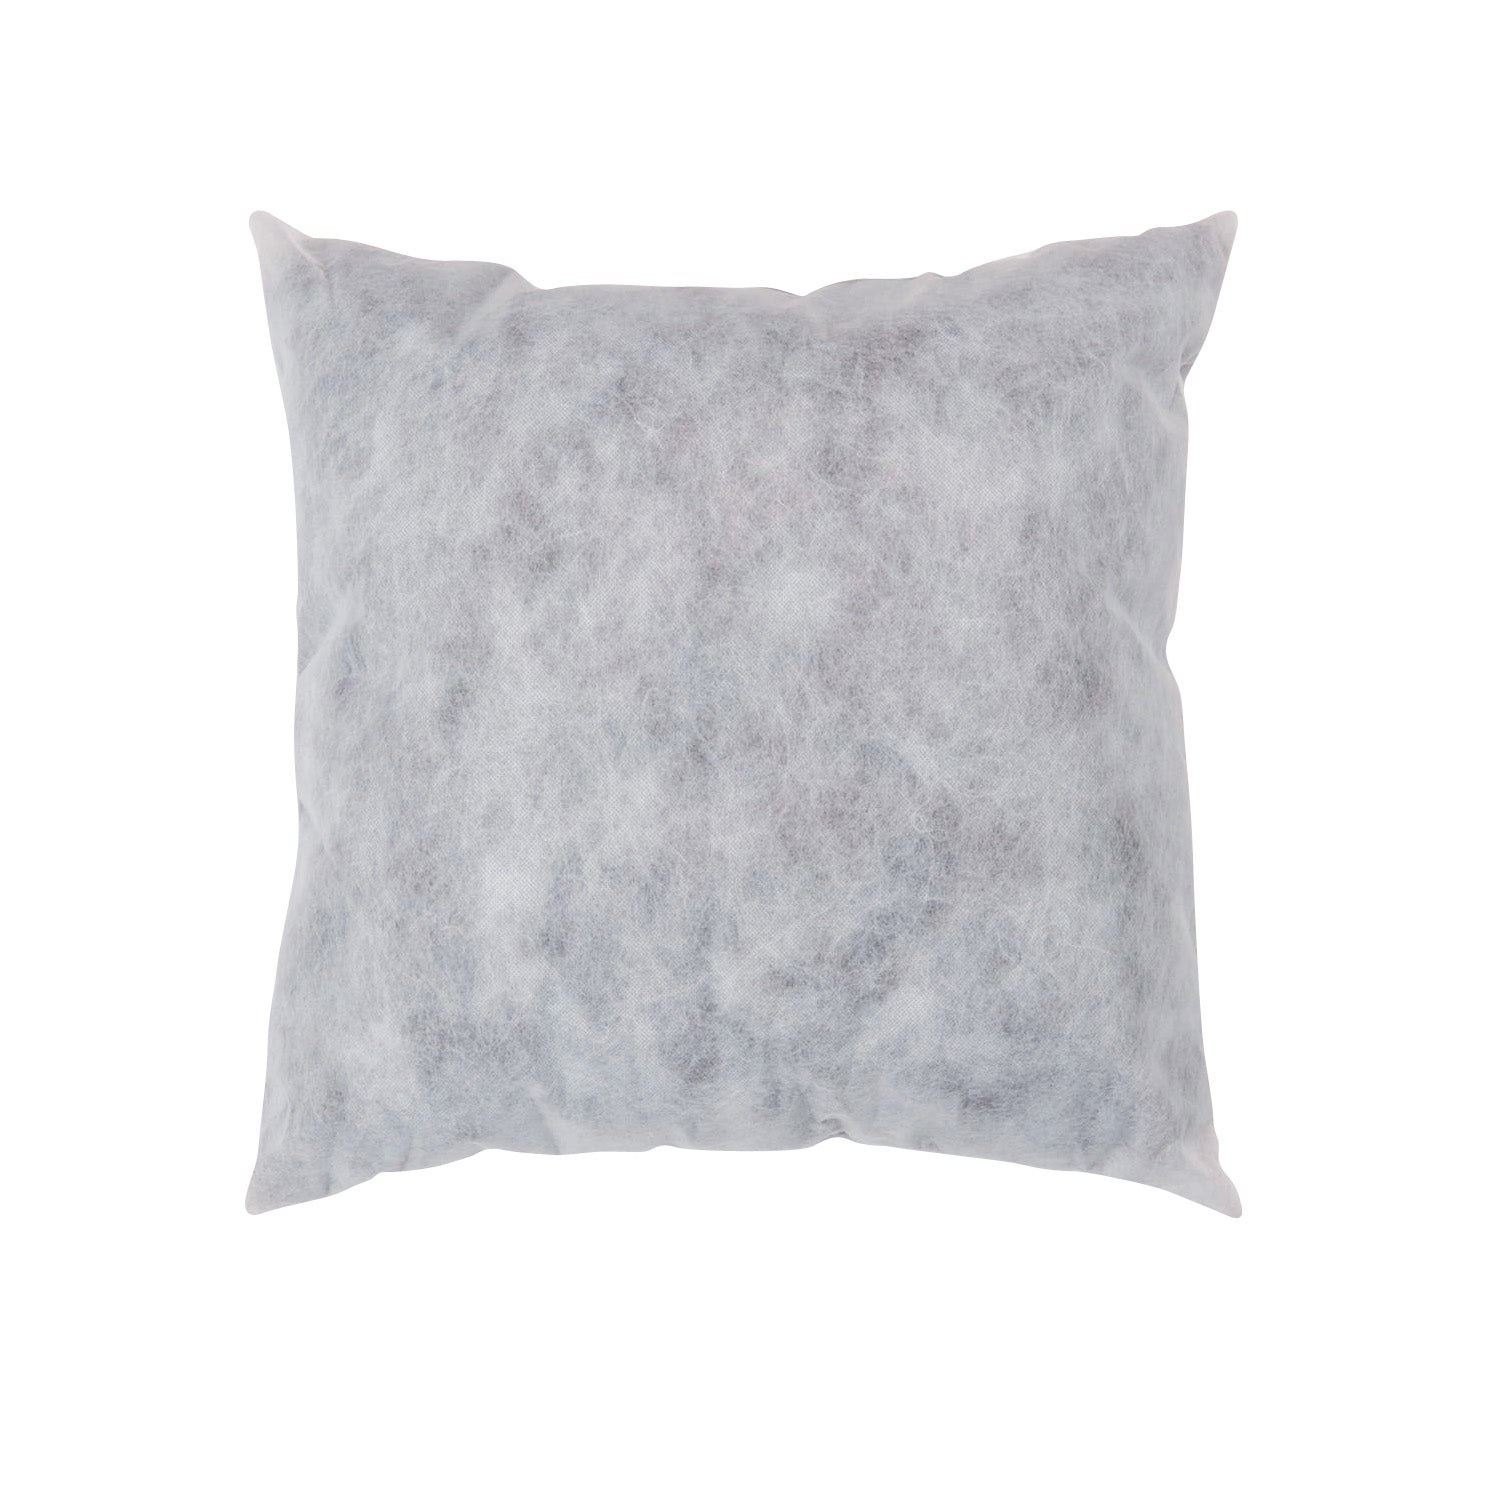 20-inch Non-Woven Polyester Pillow Insert